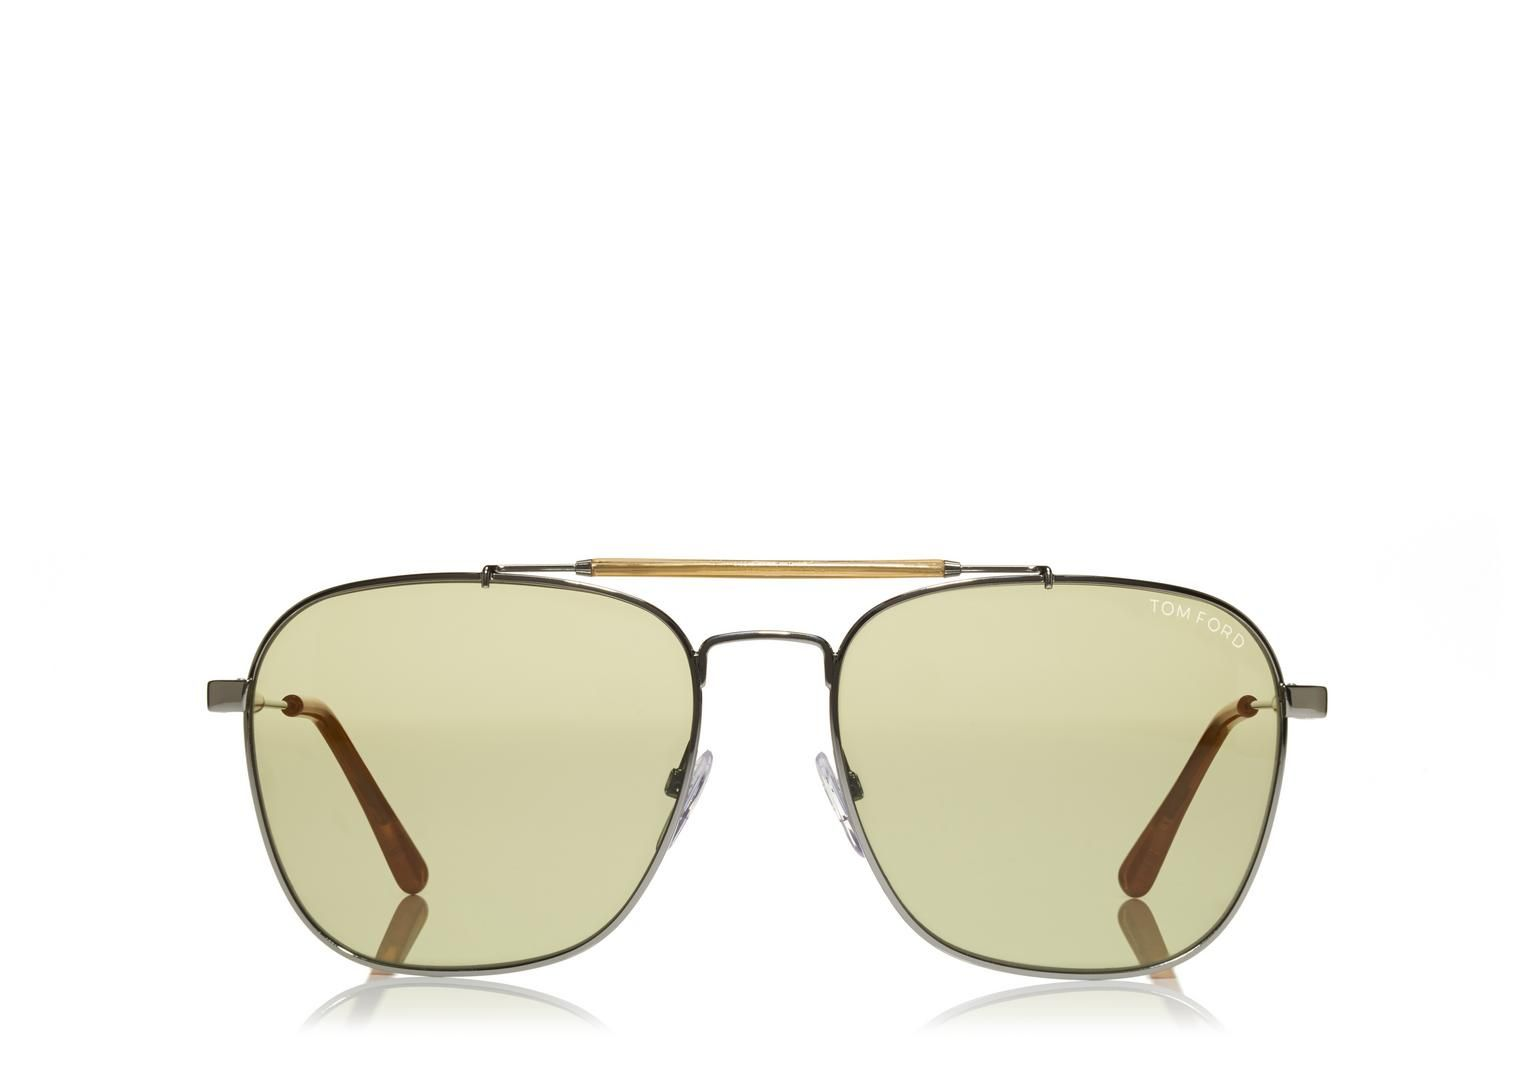 Edward Square Sunglasses